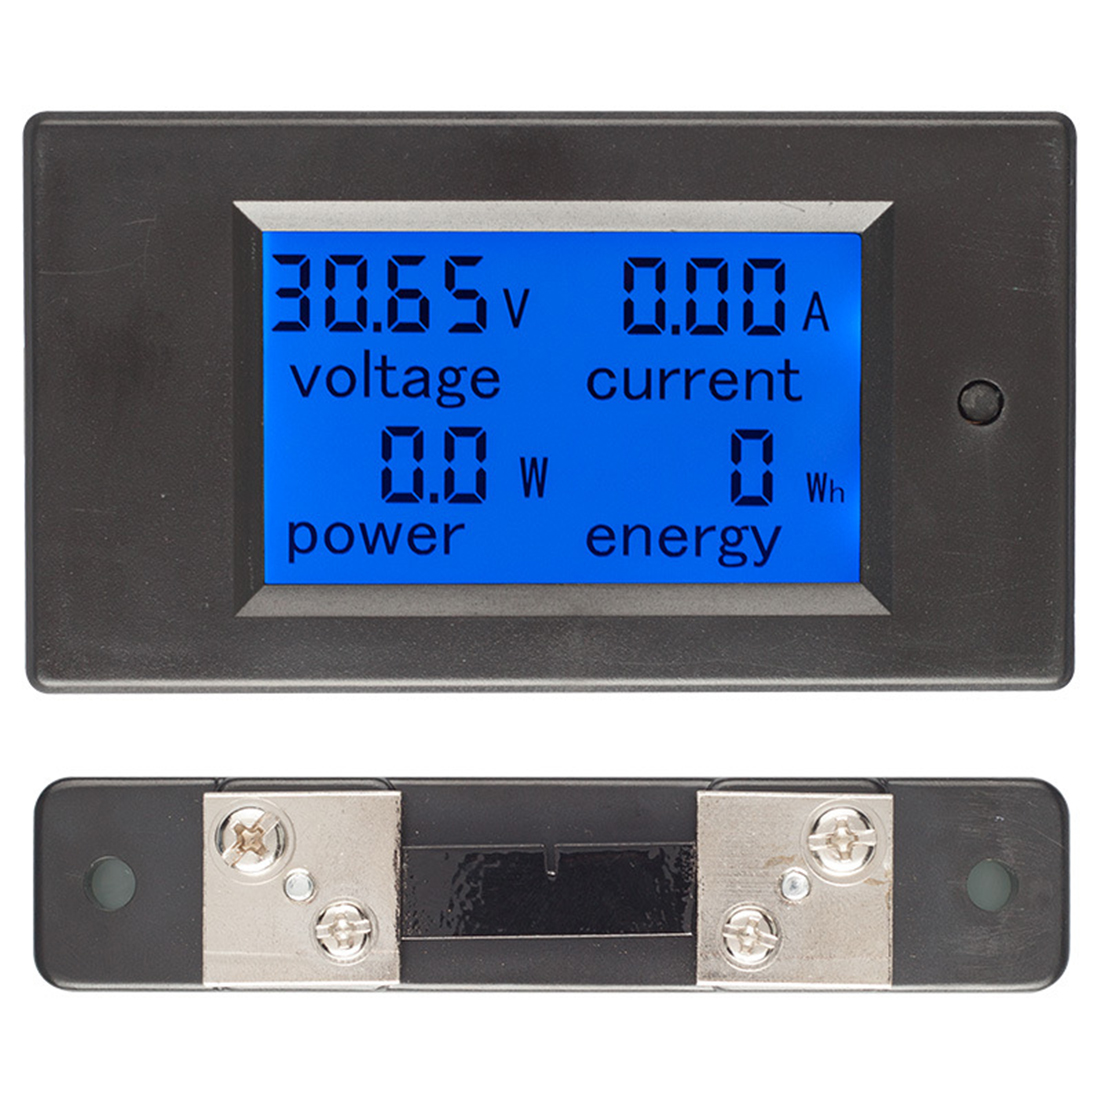 DC 6.5-100V 0-20A LCD Display Digital Current Voltage Power Energy Meter Multimeter Ammeter Voltmeter dc 6 5 100v 0 100a lcd display digital current voltage power energy meter multimeter ammeter voltmeter w 100a current shunt